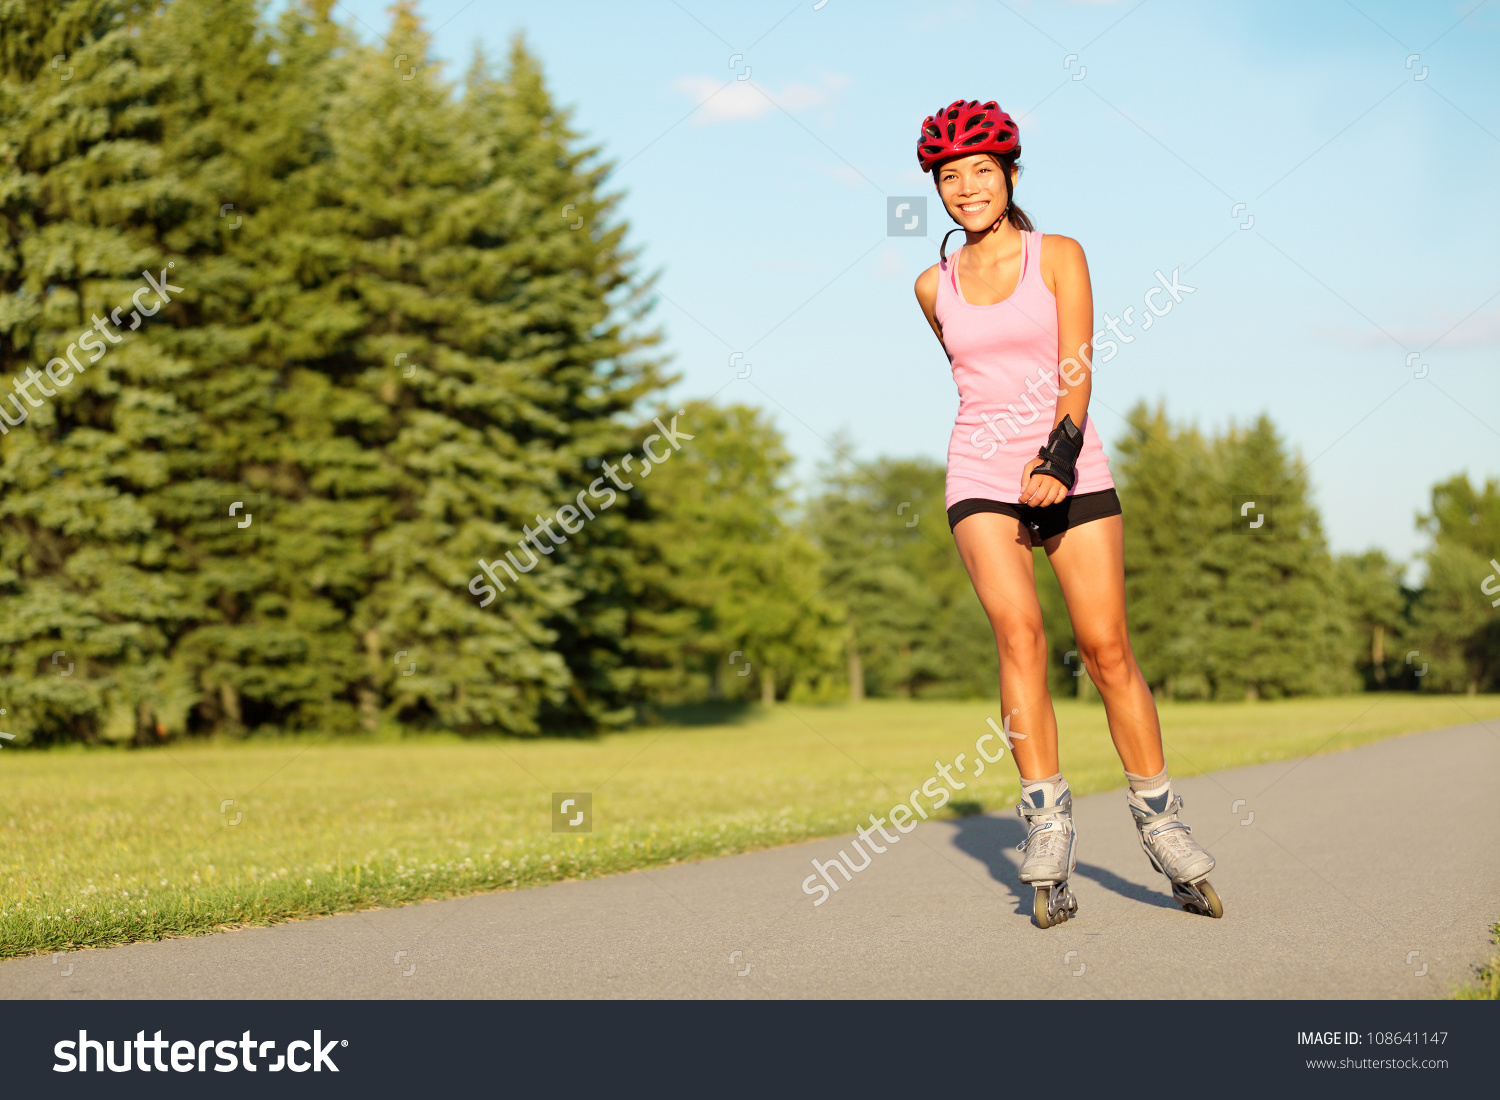 girl rollerblading clipart with no splash #5